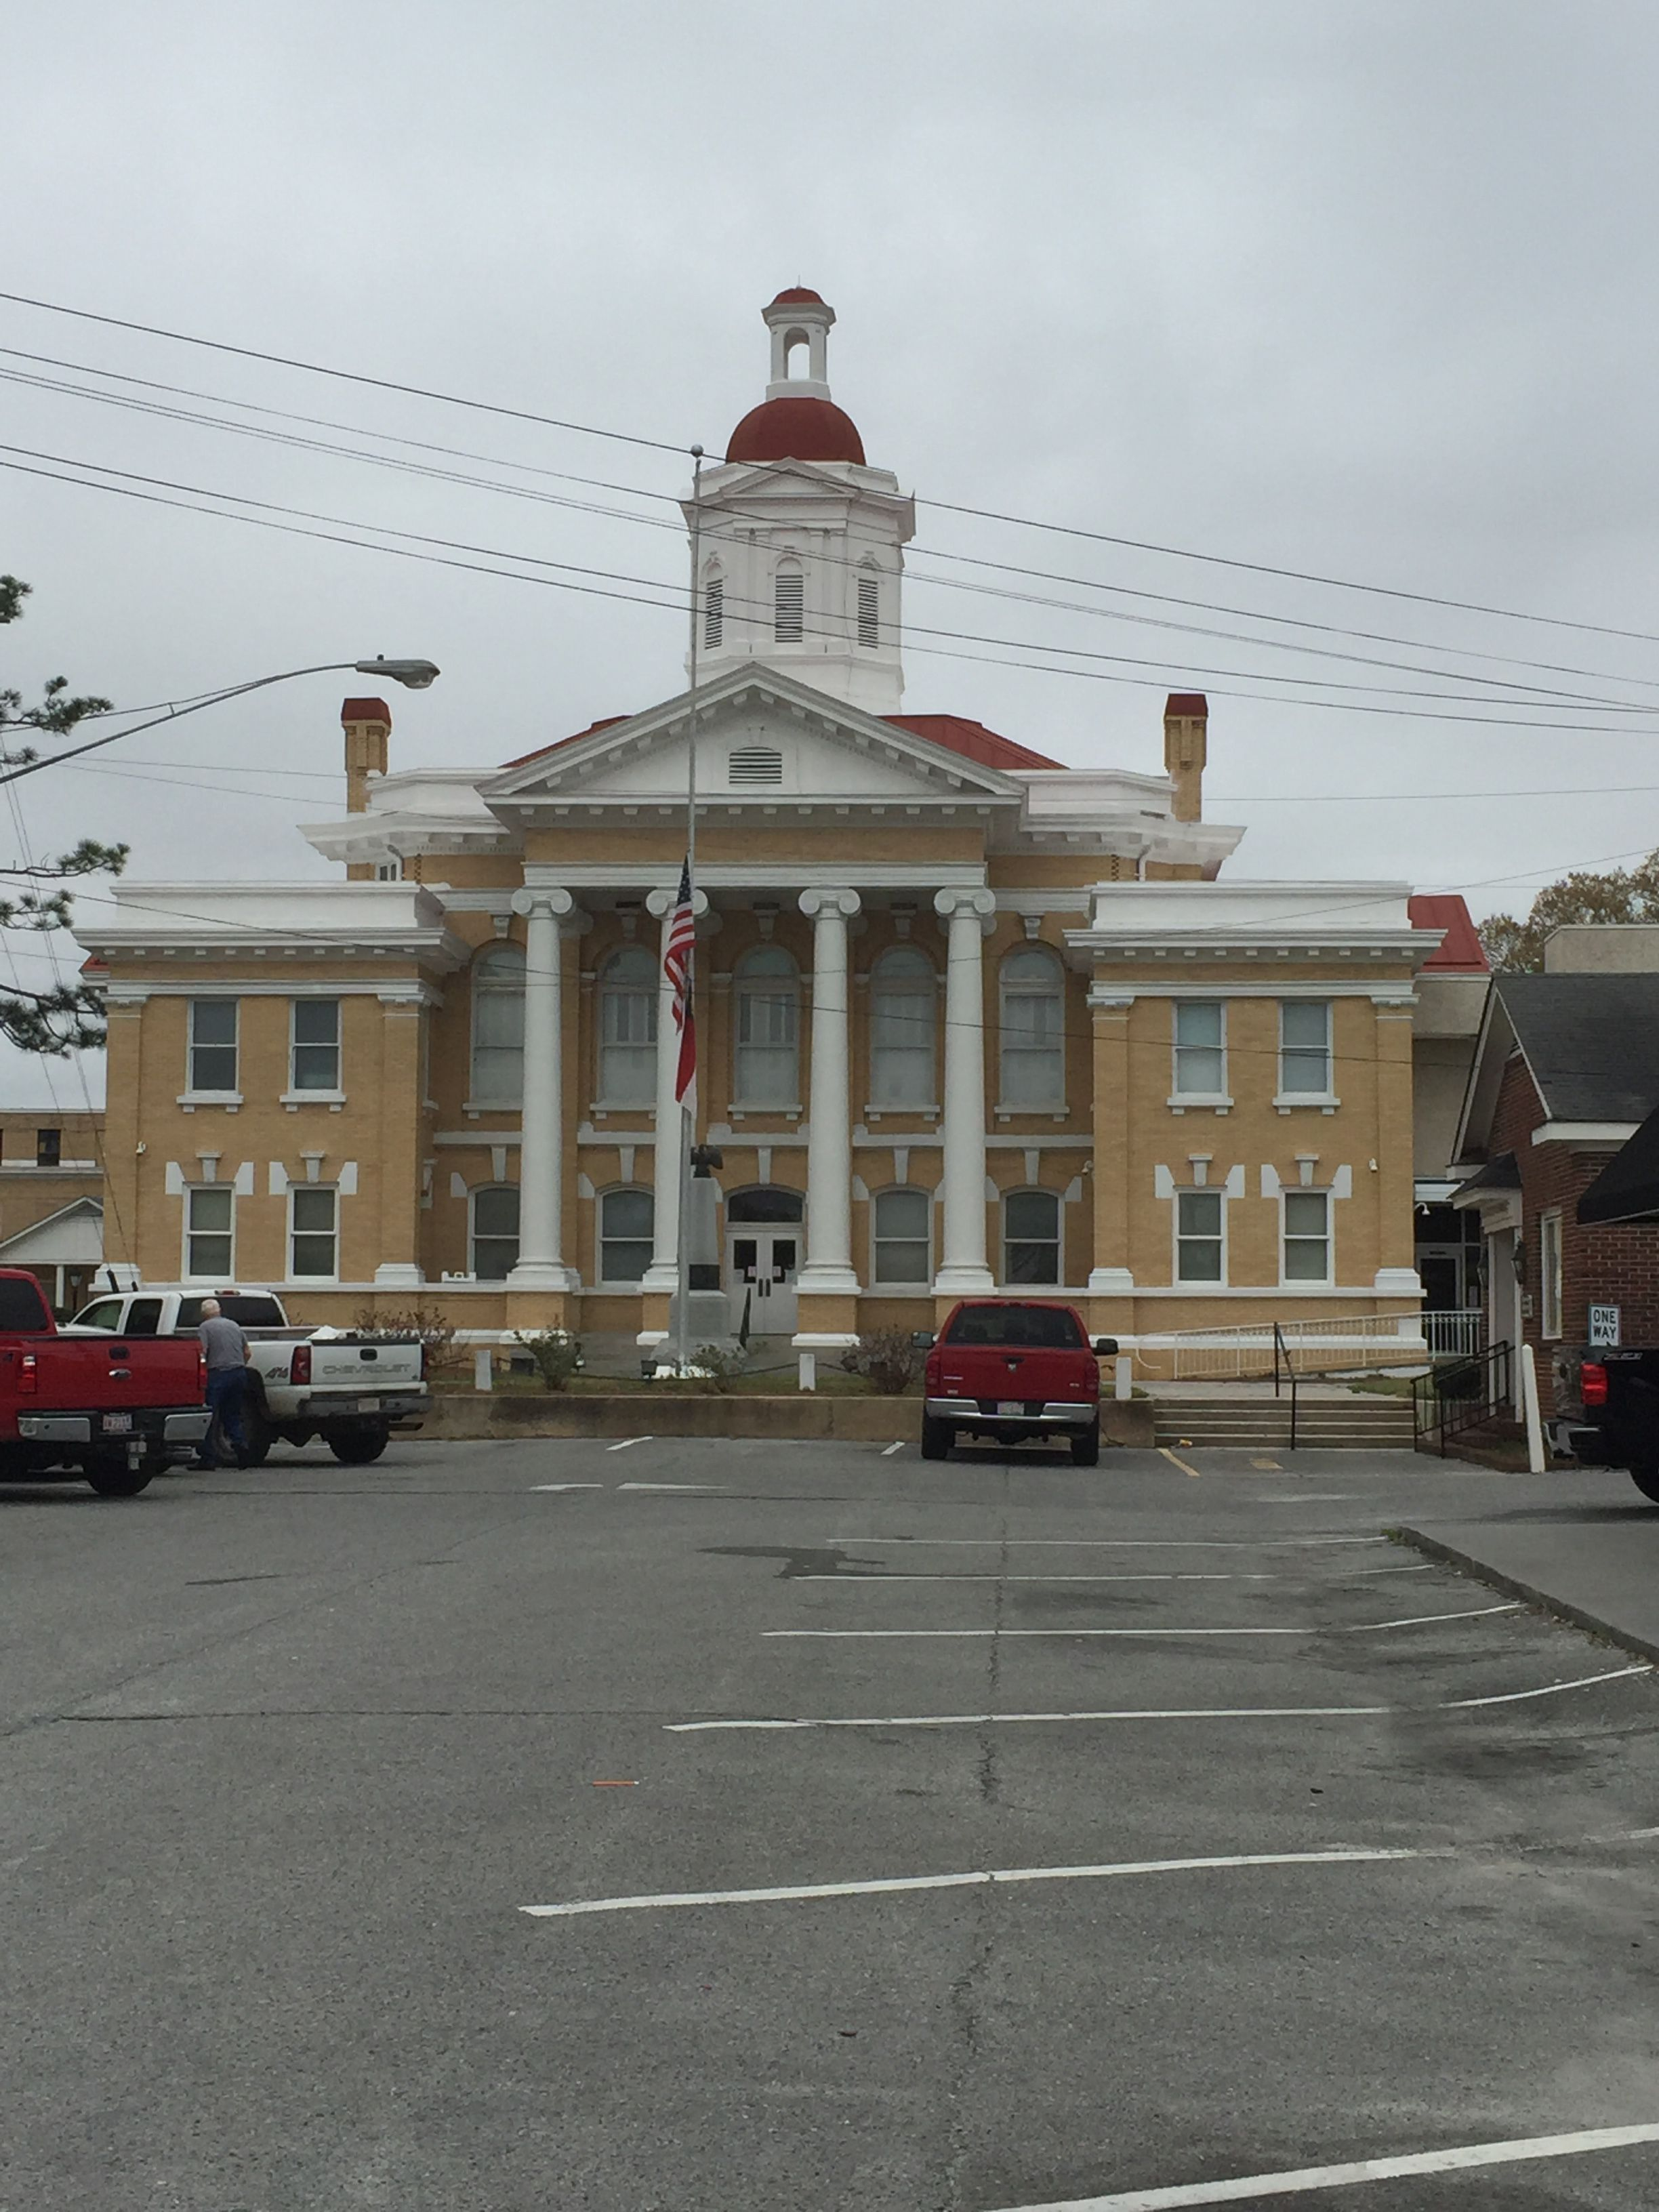 Duplin County Courthouse in Kenansville, North Carolina. Paul Chandler March 2016.